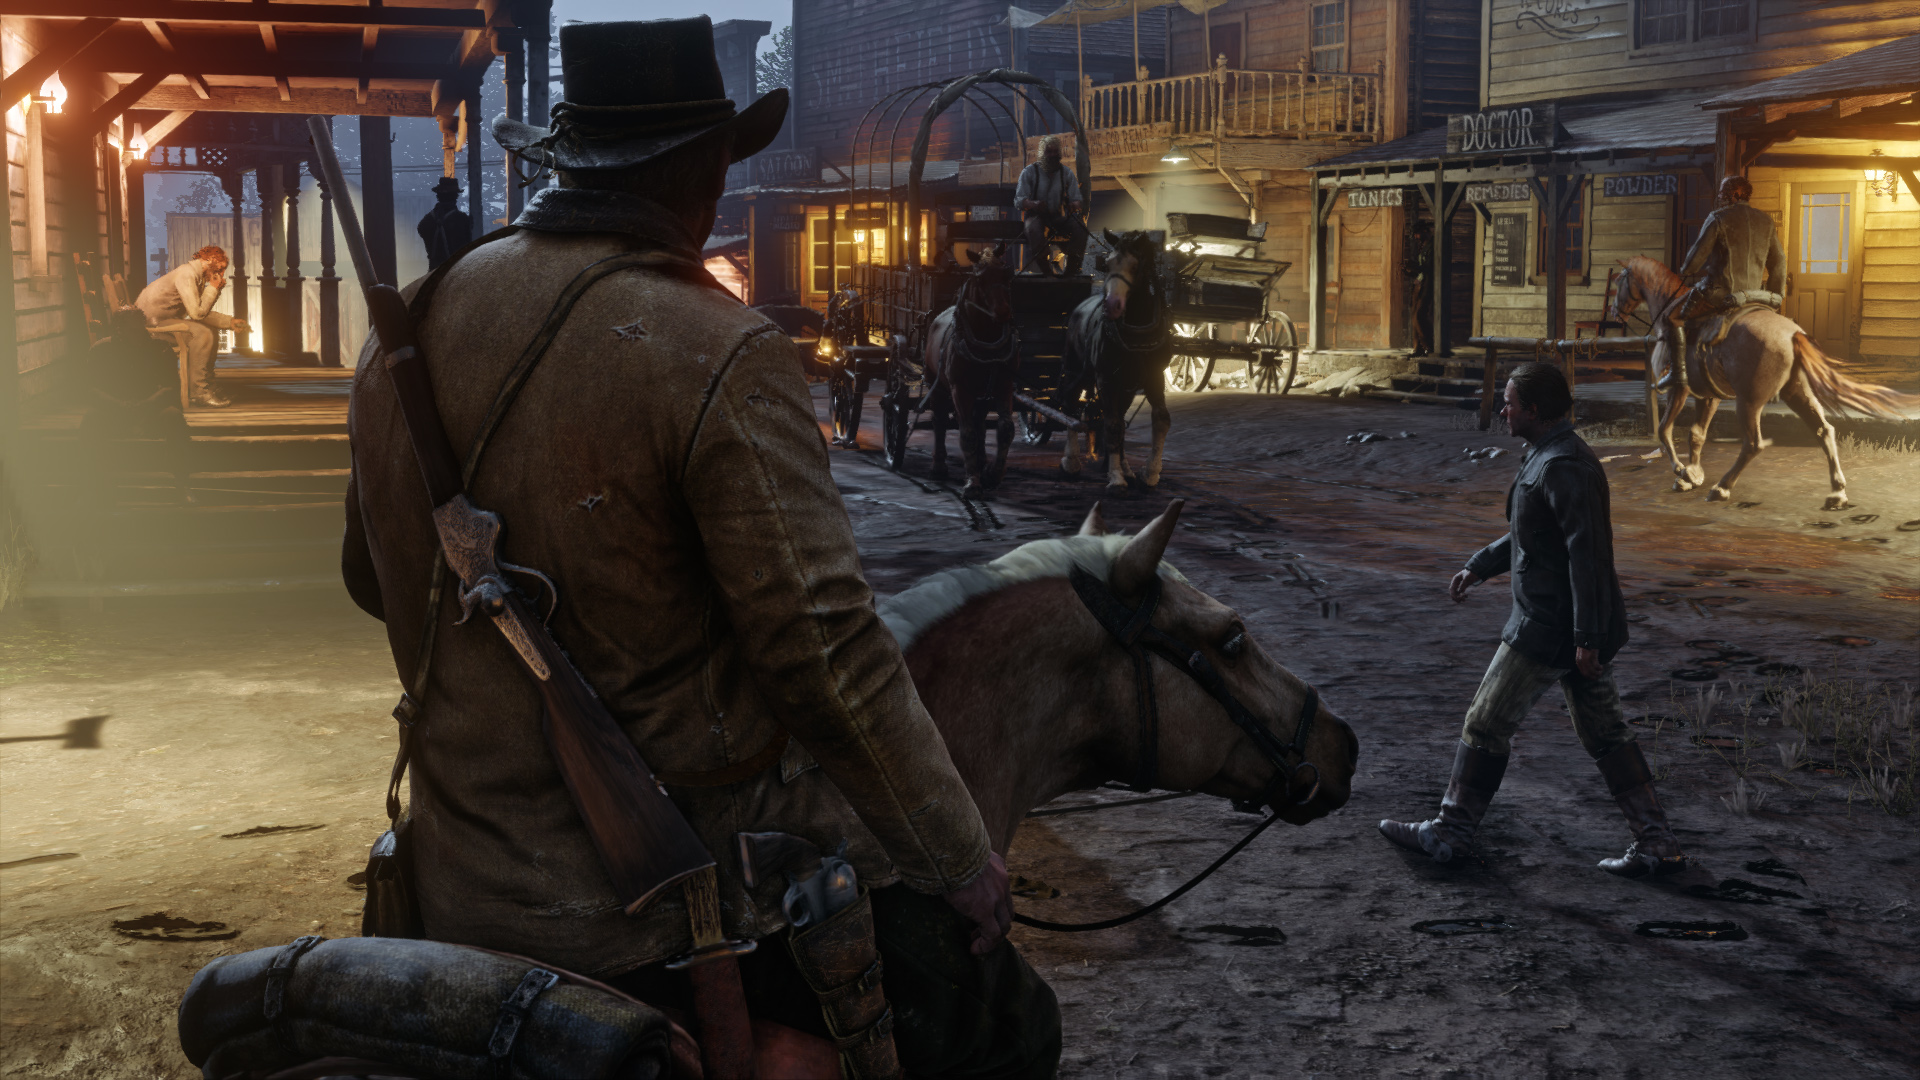 Red Dead Redemption 2 Release Date And Pre-Order Guide